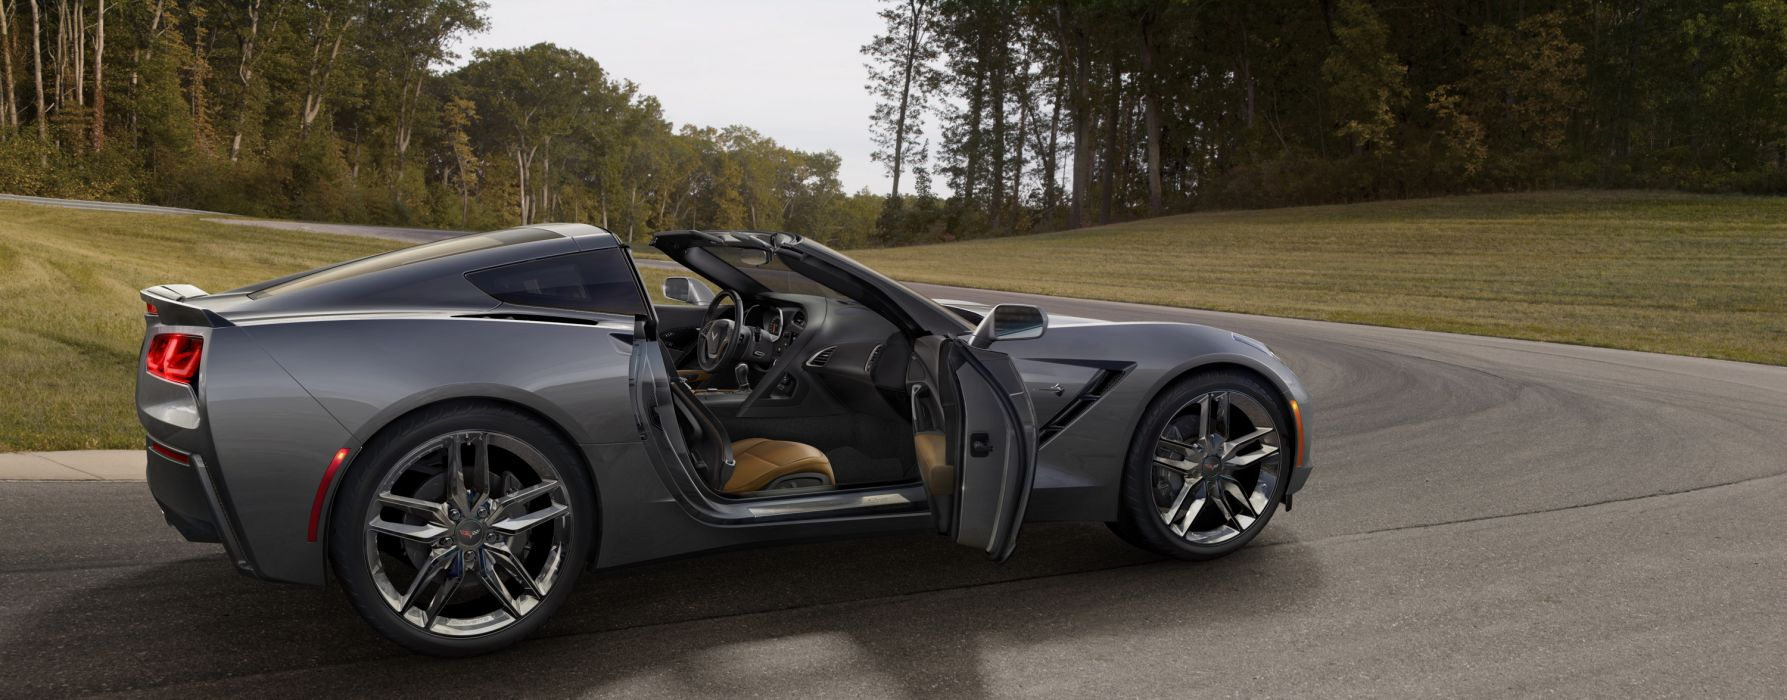 2014 Chevrolet Corvette Stingray supercar charcoal          t wallpaper